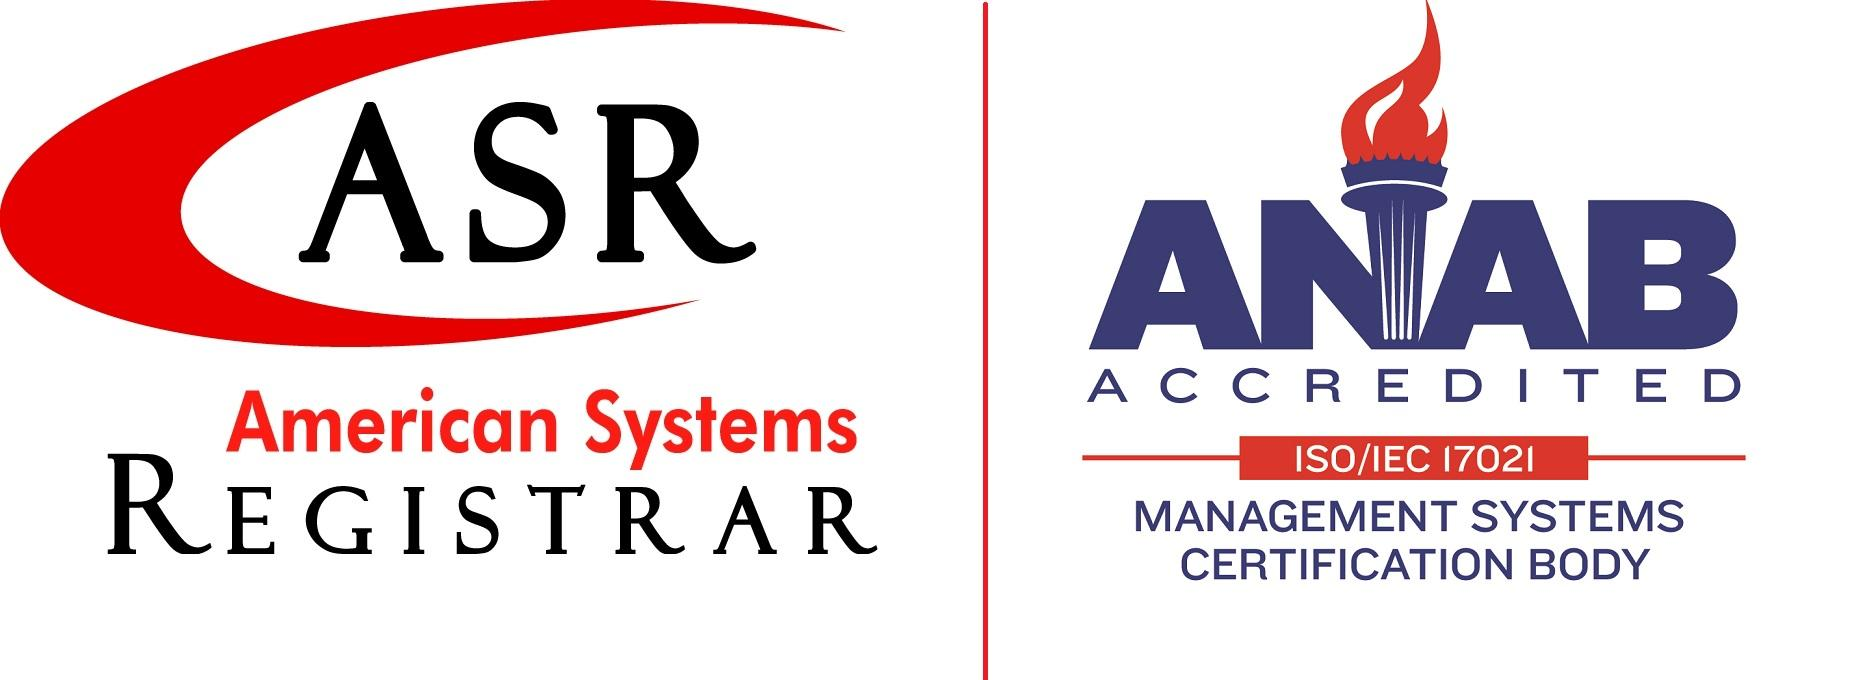 ASR ANAB Logo for ISO registration